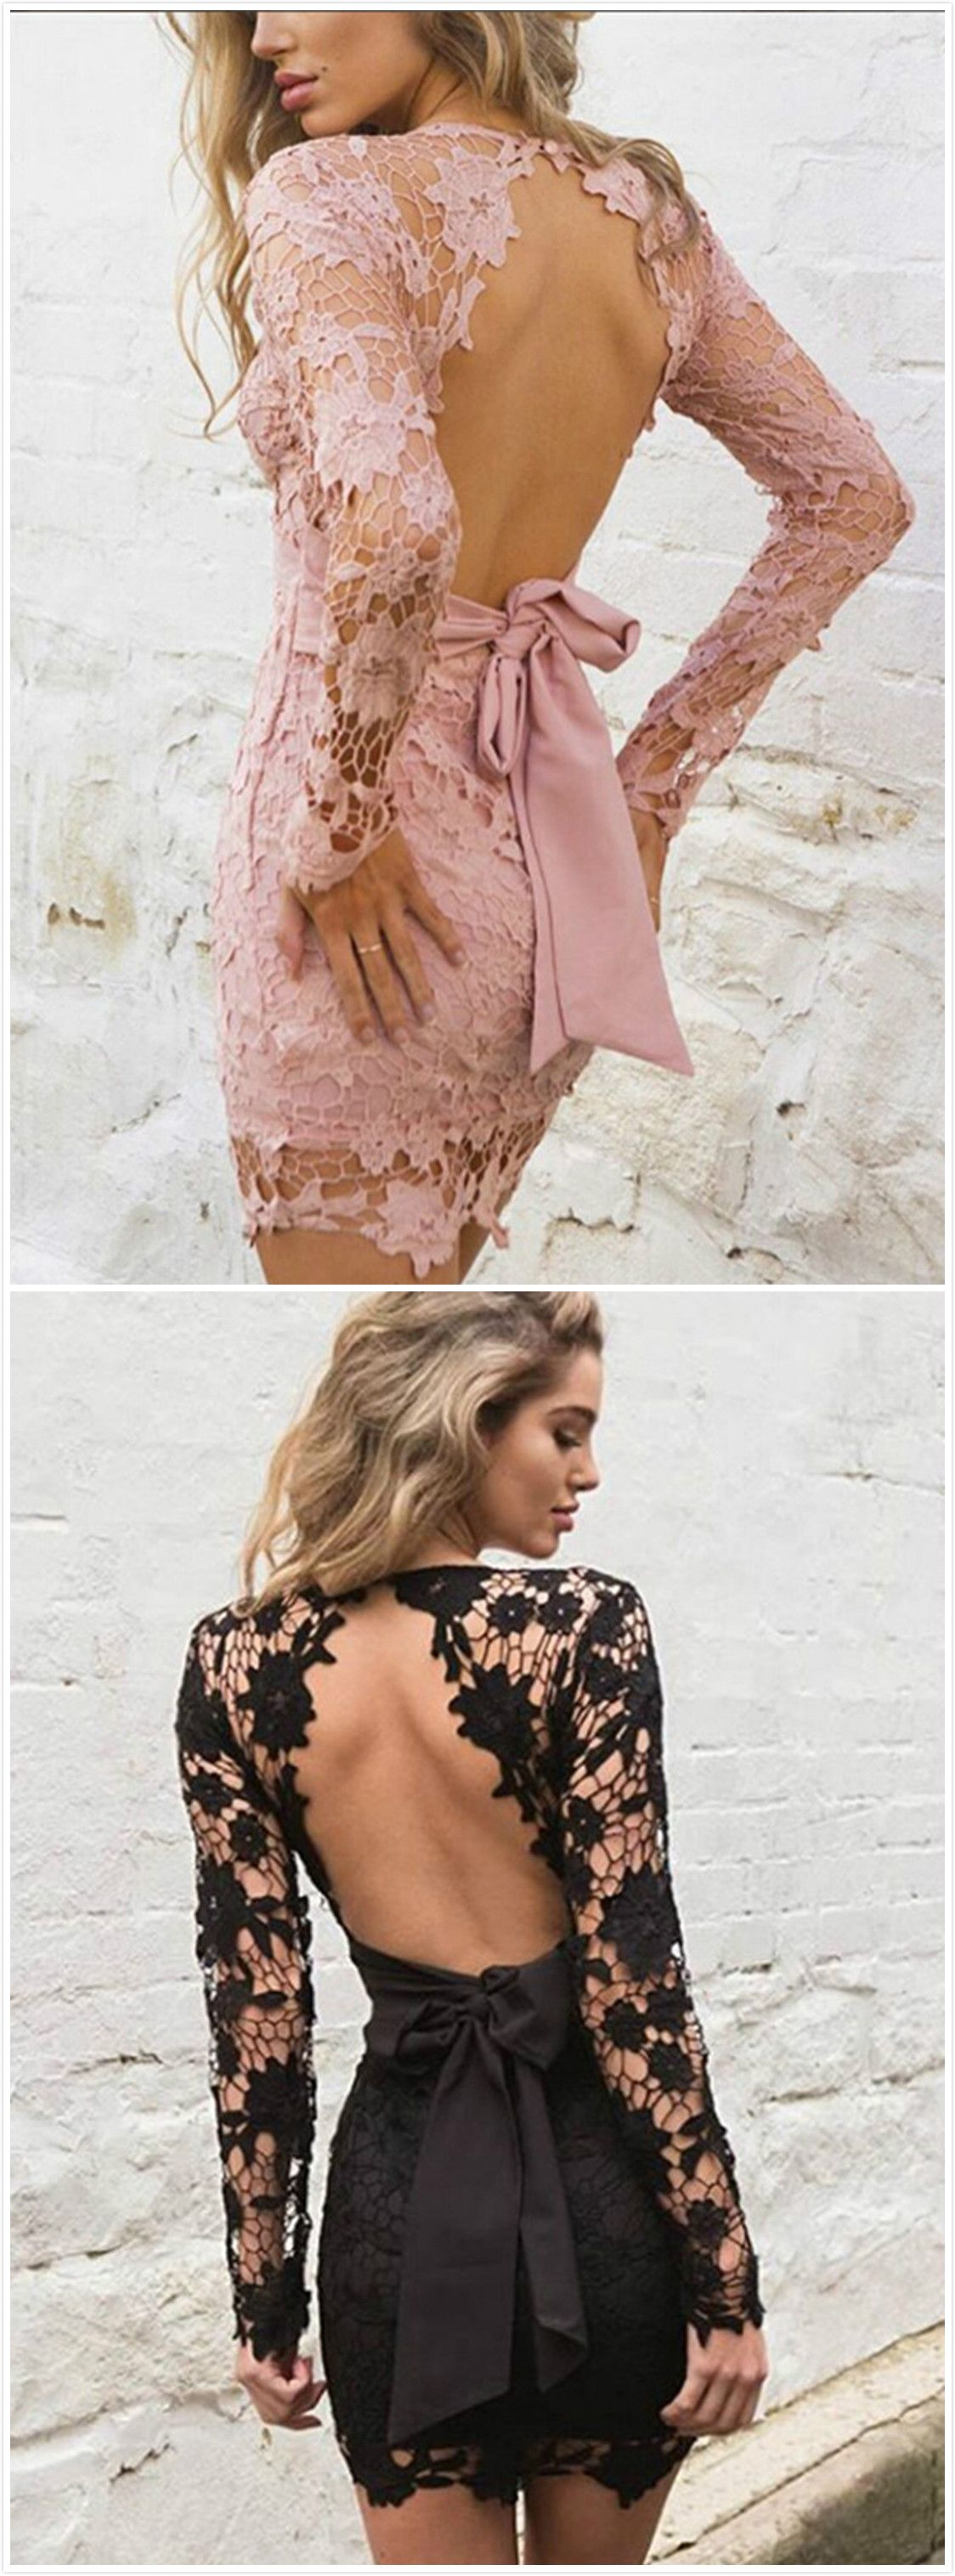 Women's V Neck Backless Hollowed out Crochet Bodycon Dress with Belt